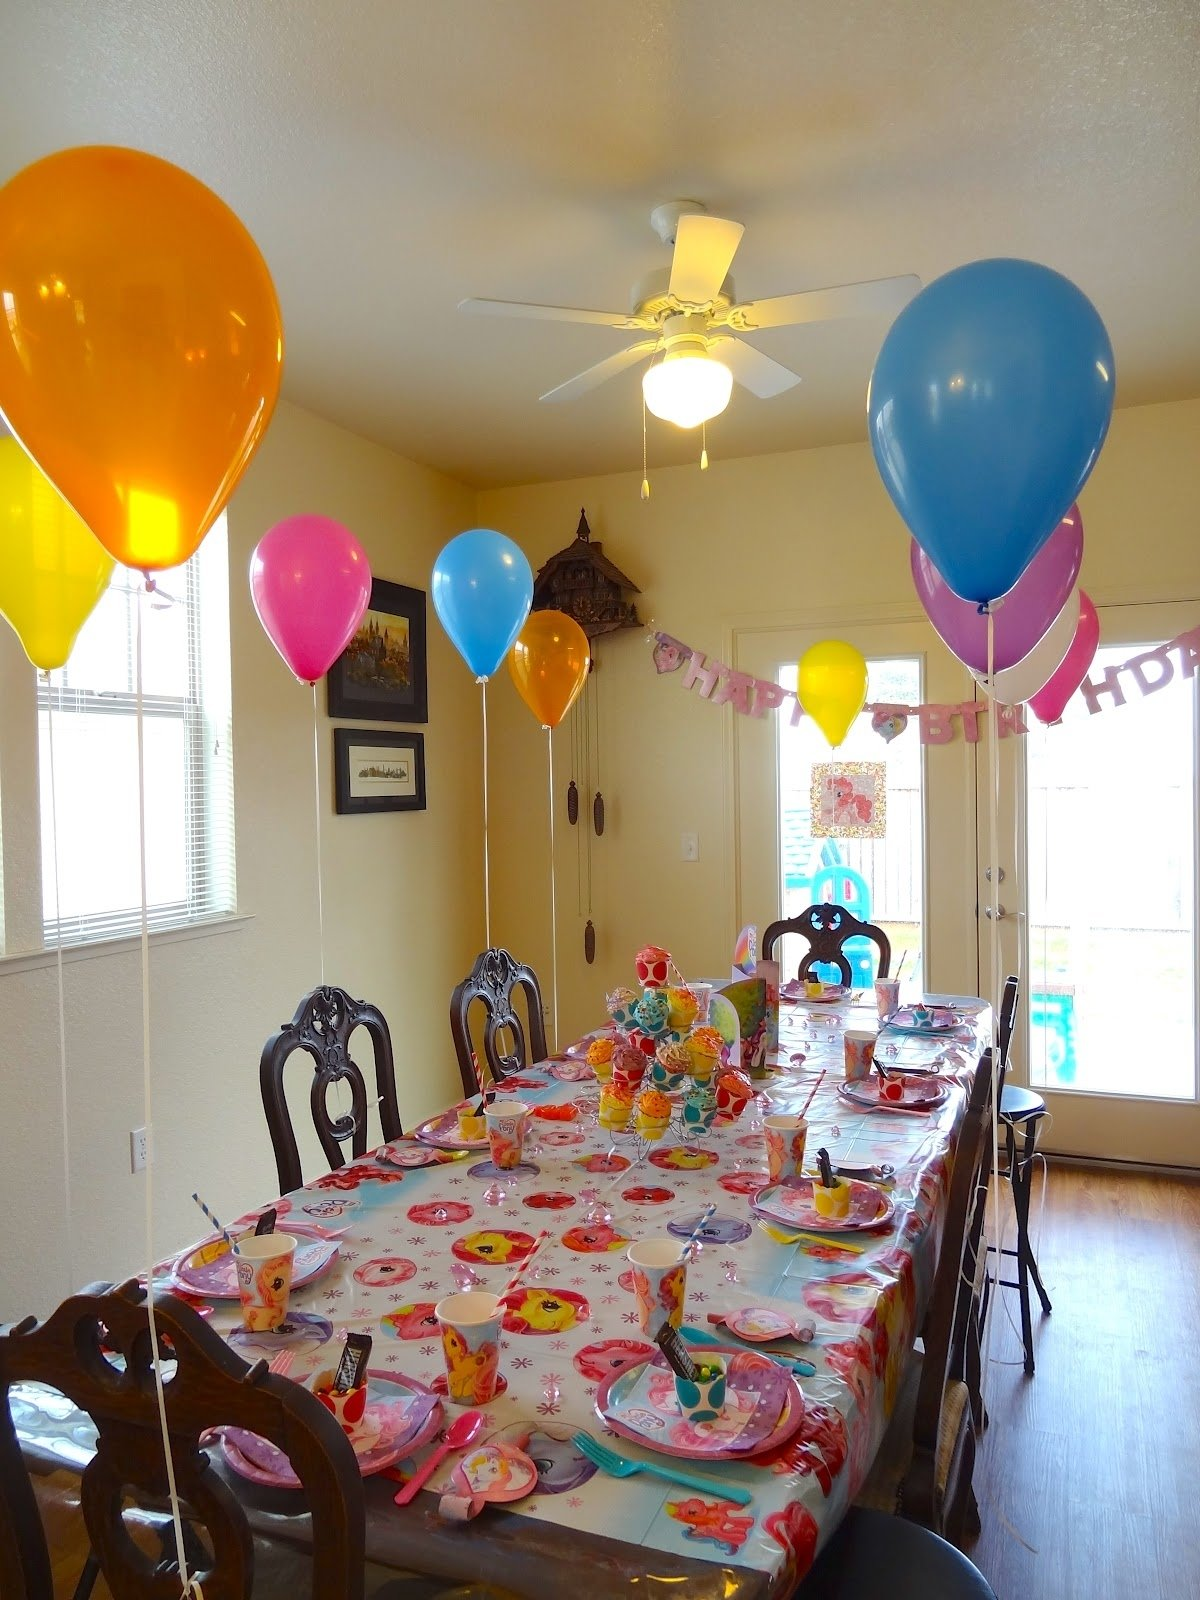 10 Pretty 6Th Birthday Party Ideas For Girls welcome to the krazy kingdom tayas 5th birthday party my little pony 1 2020